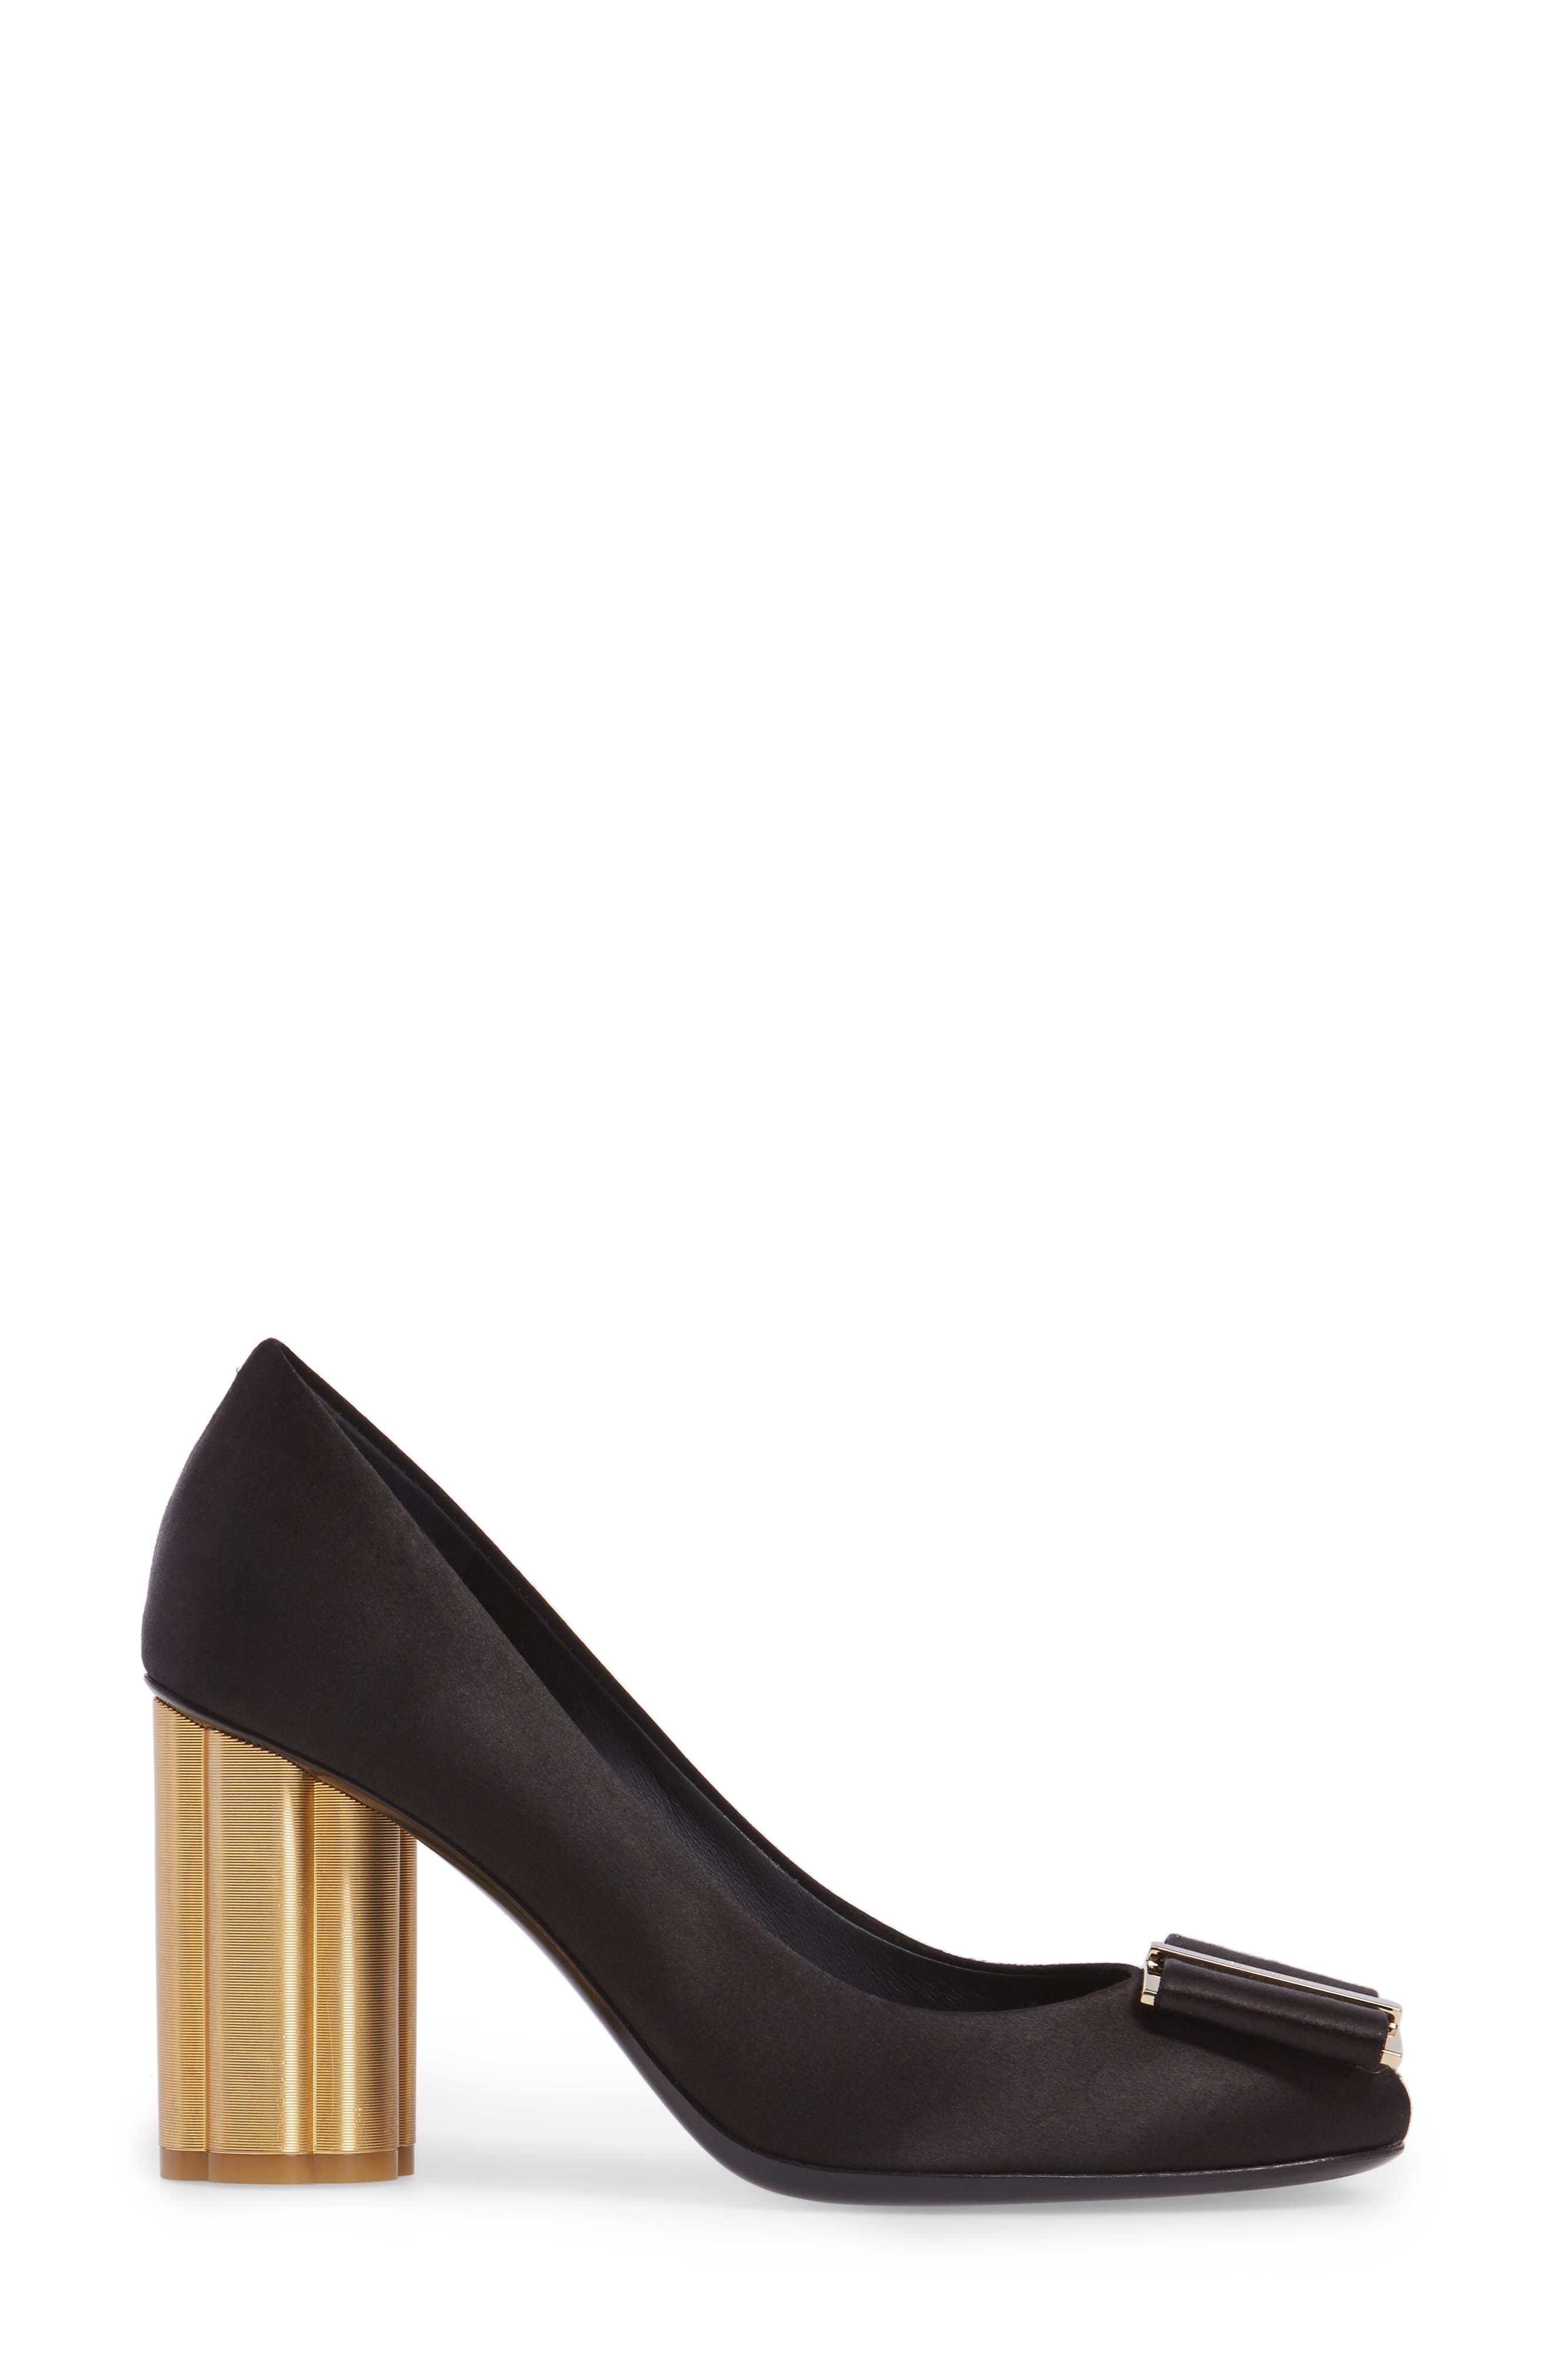 Alternate Image 3  - Salvatore Ferragamo Flower Heel Bow Pump (Women)